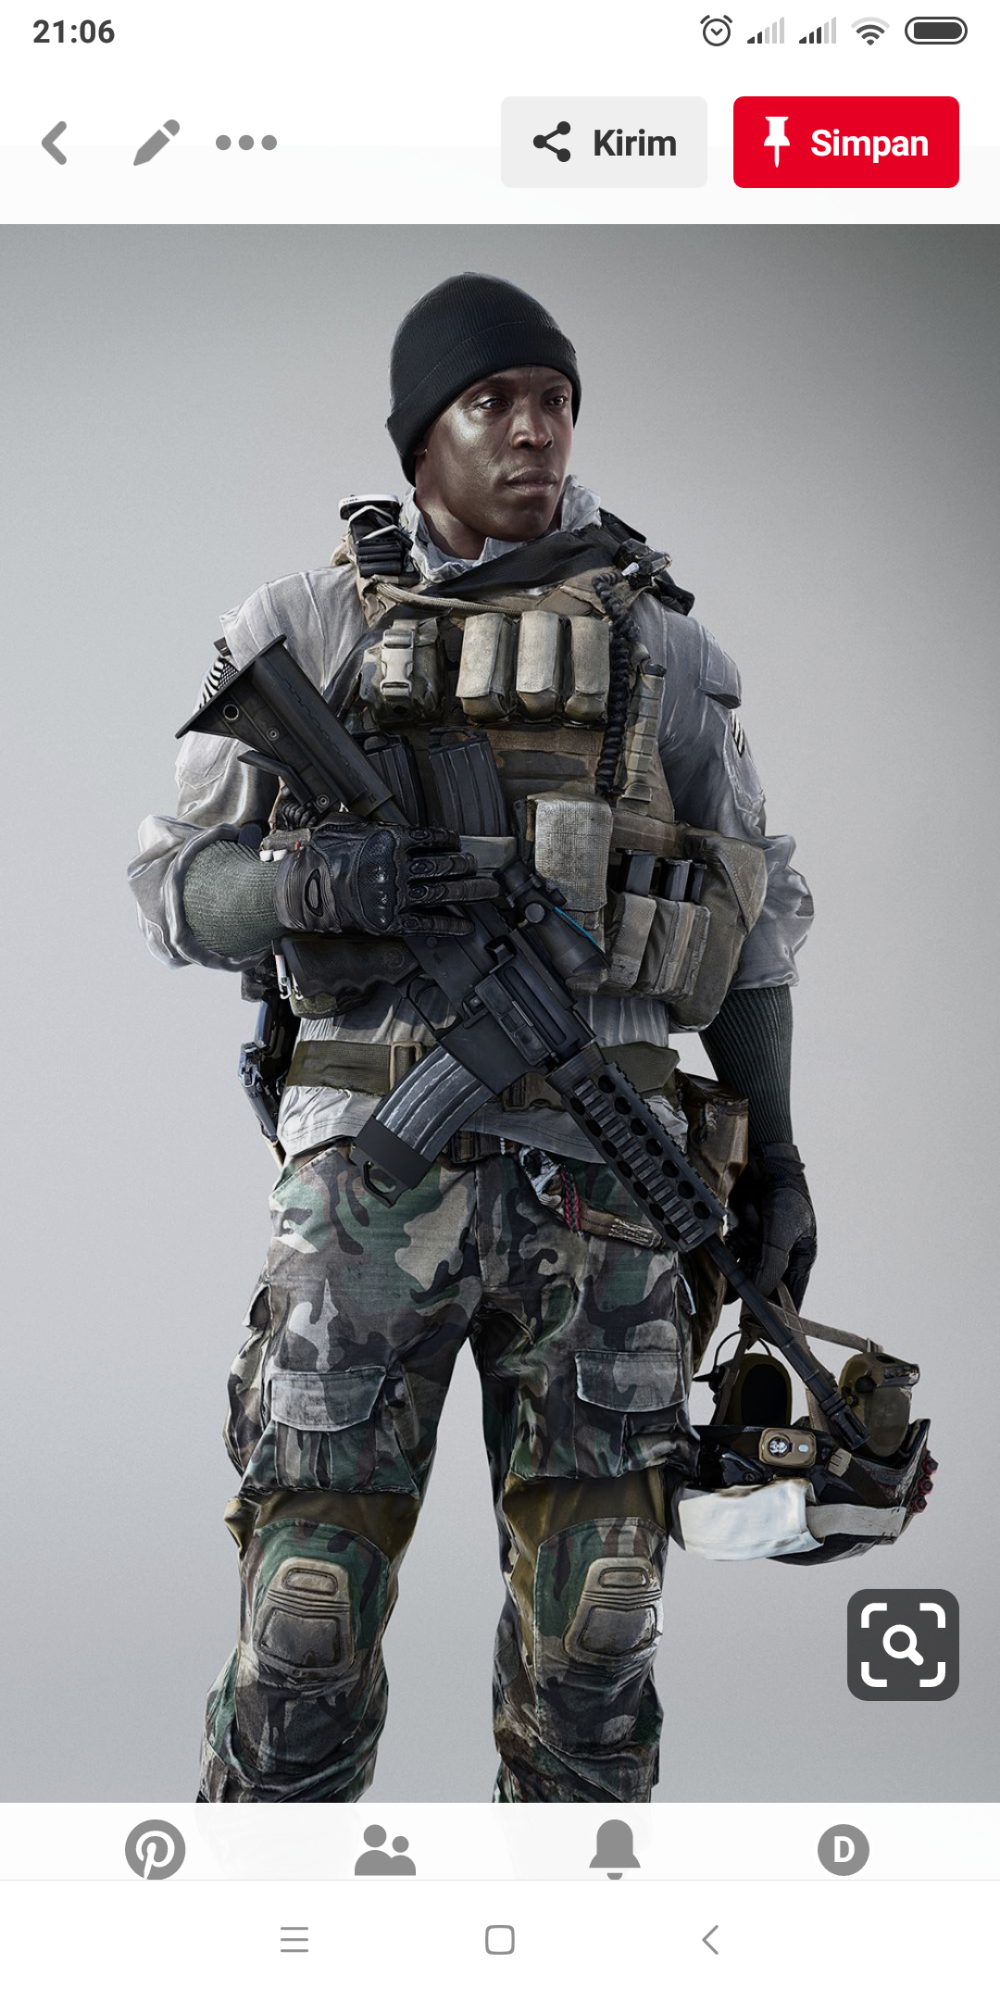 Hey, can anyone explain in detail what loadout is used by Irish?  because I want to cosplay as him